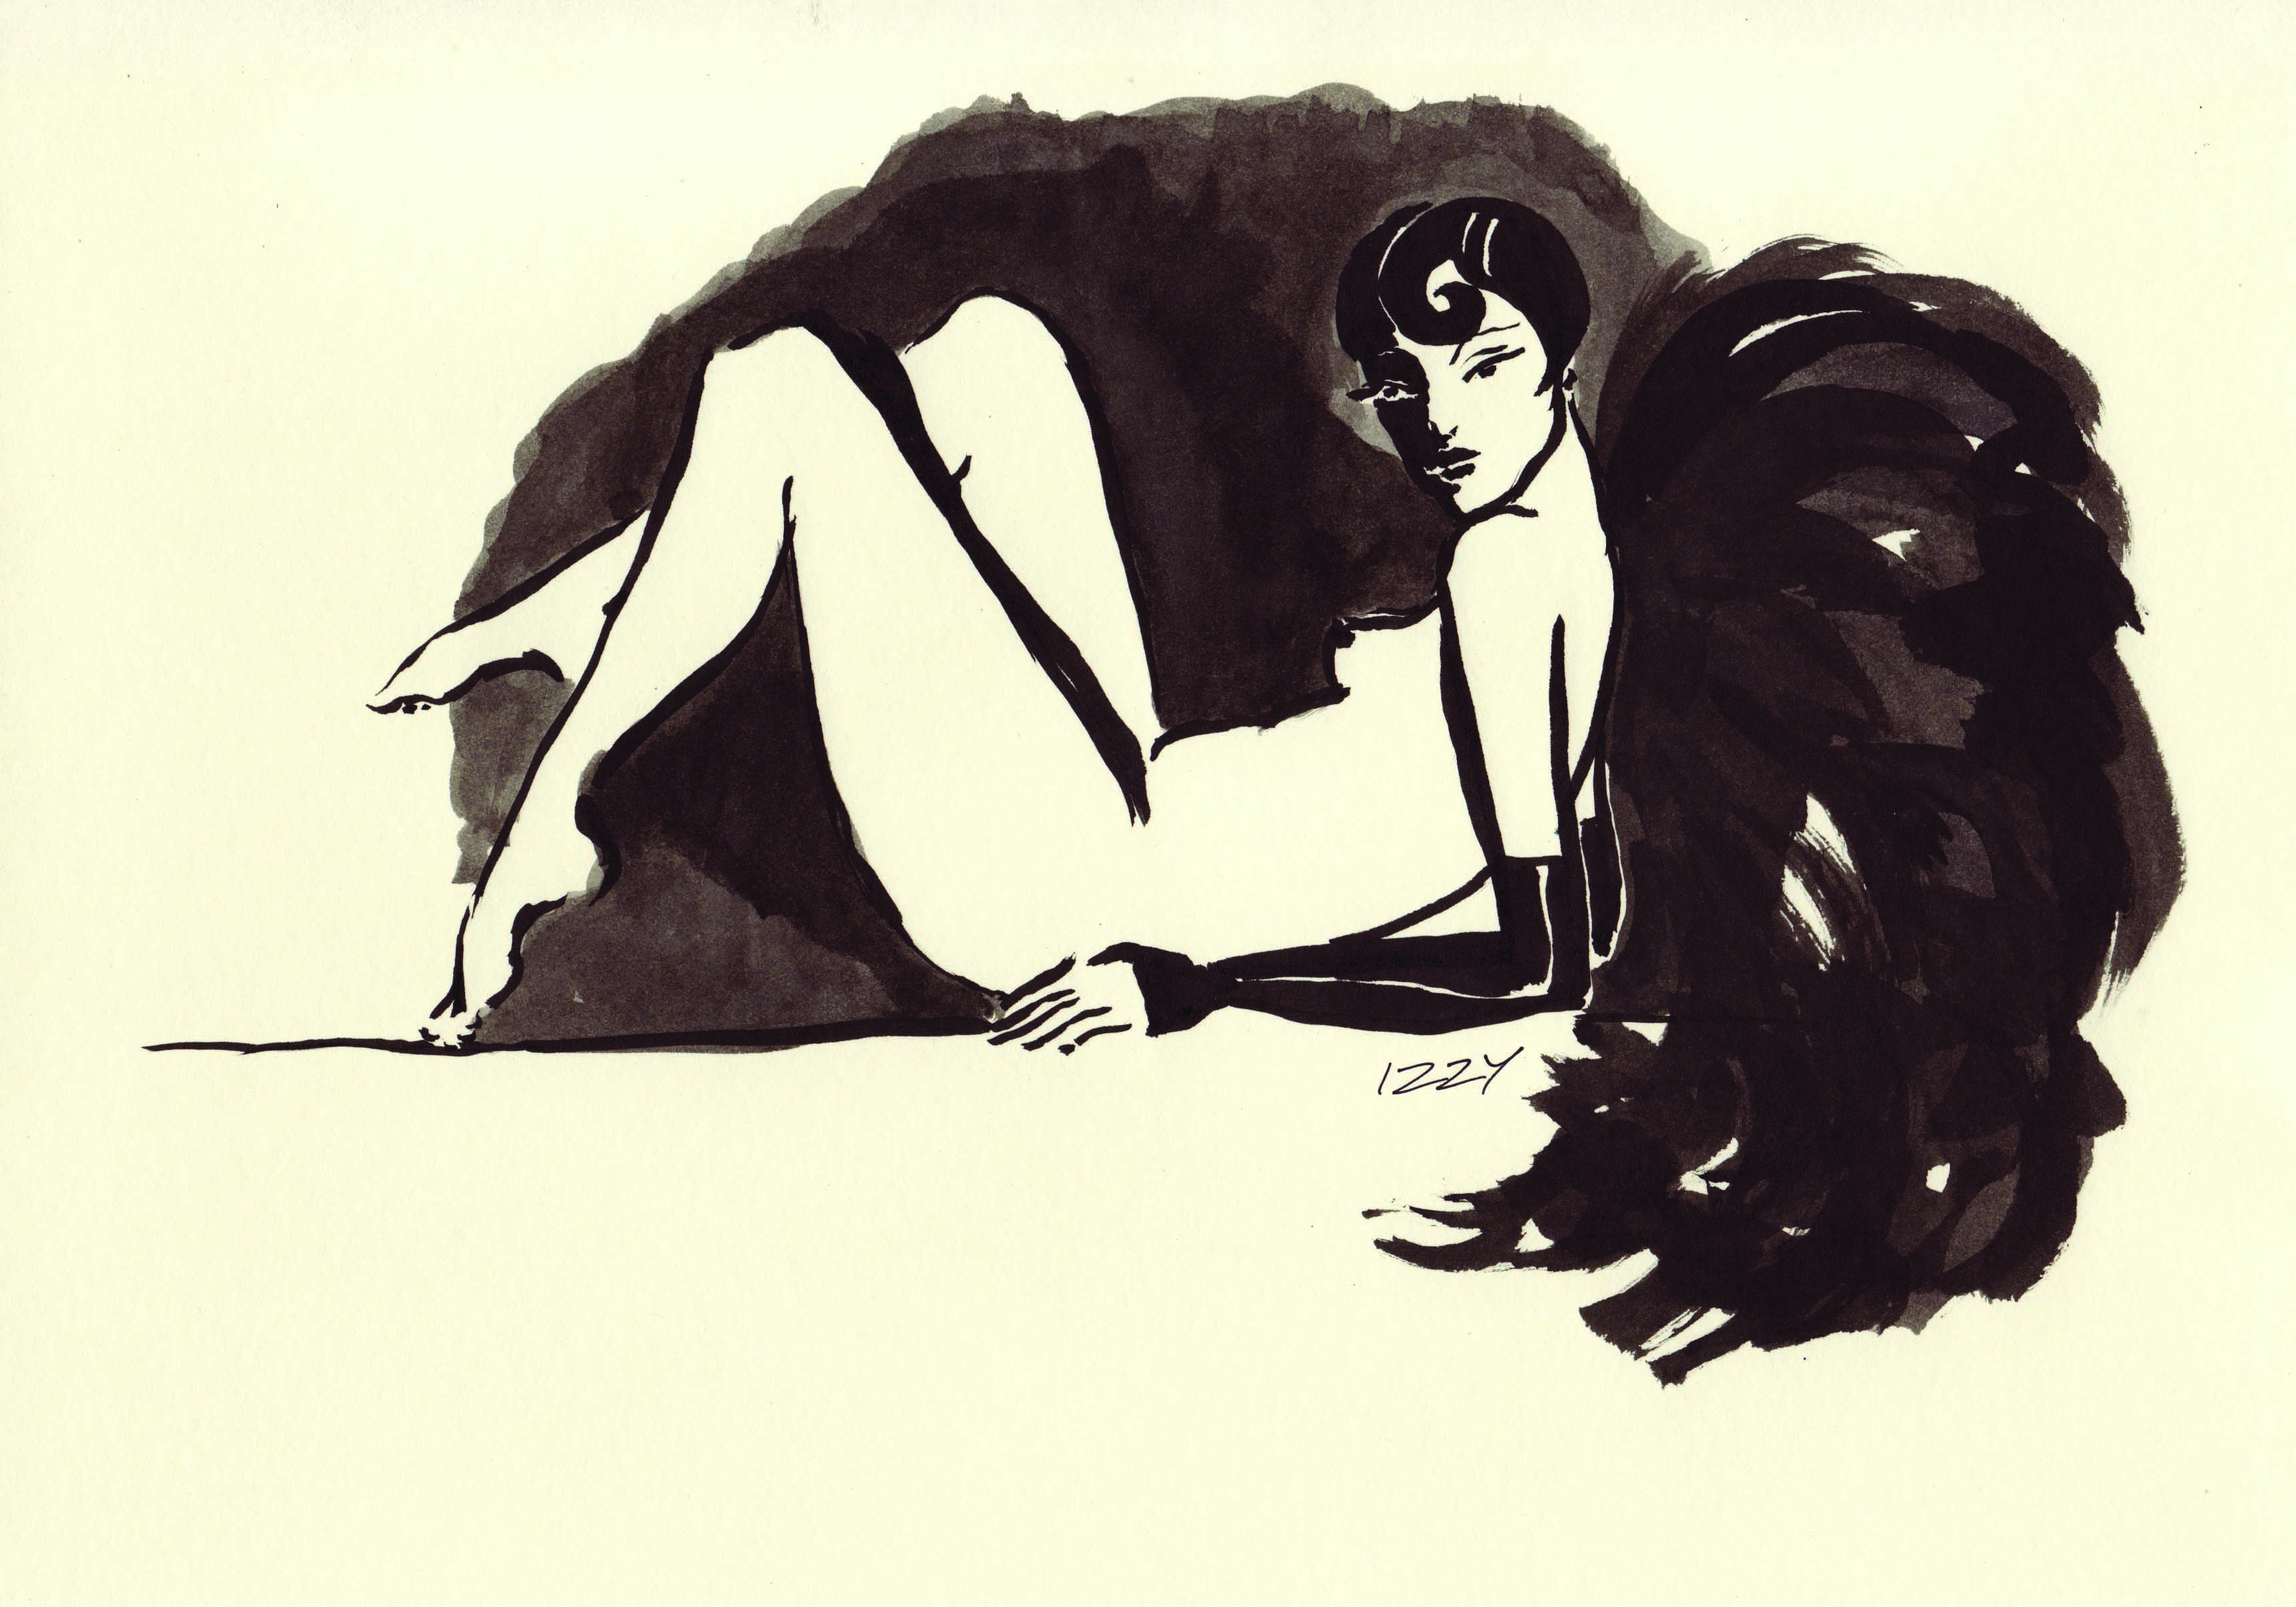 Reclining burlesque dancer